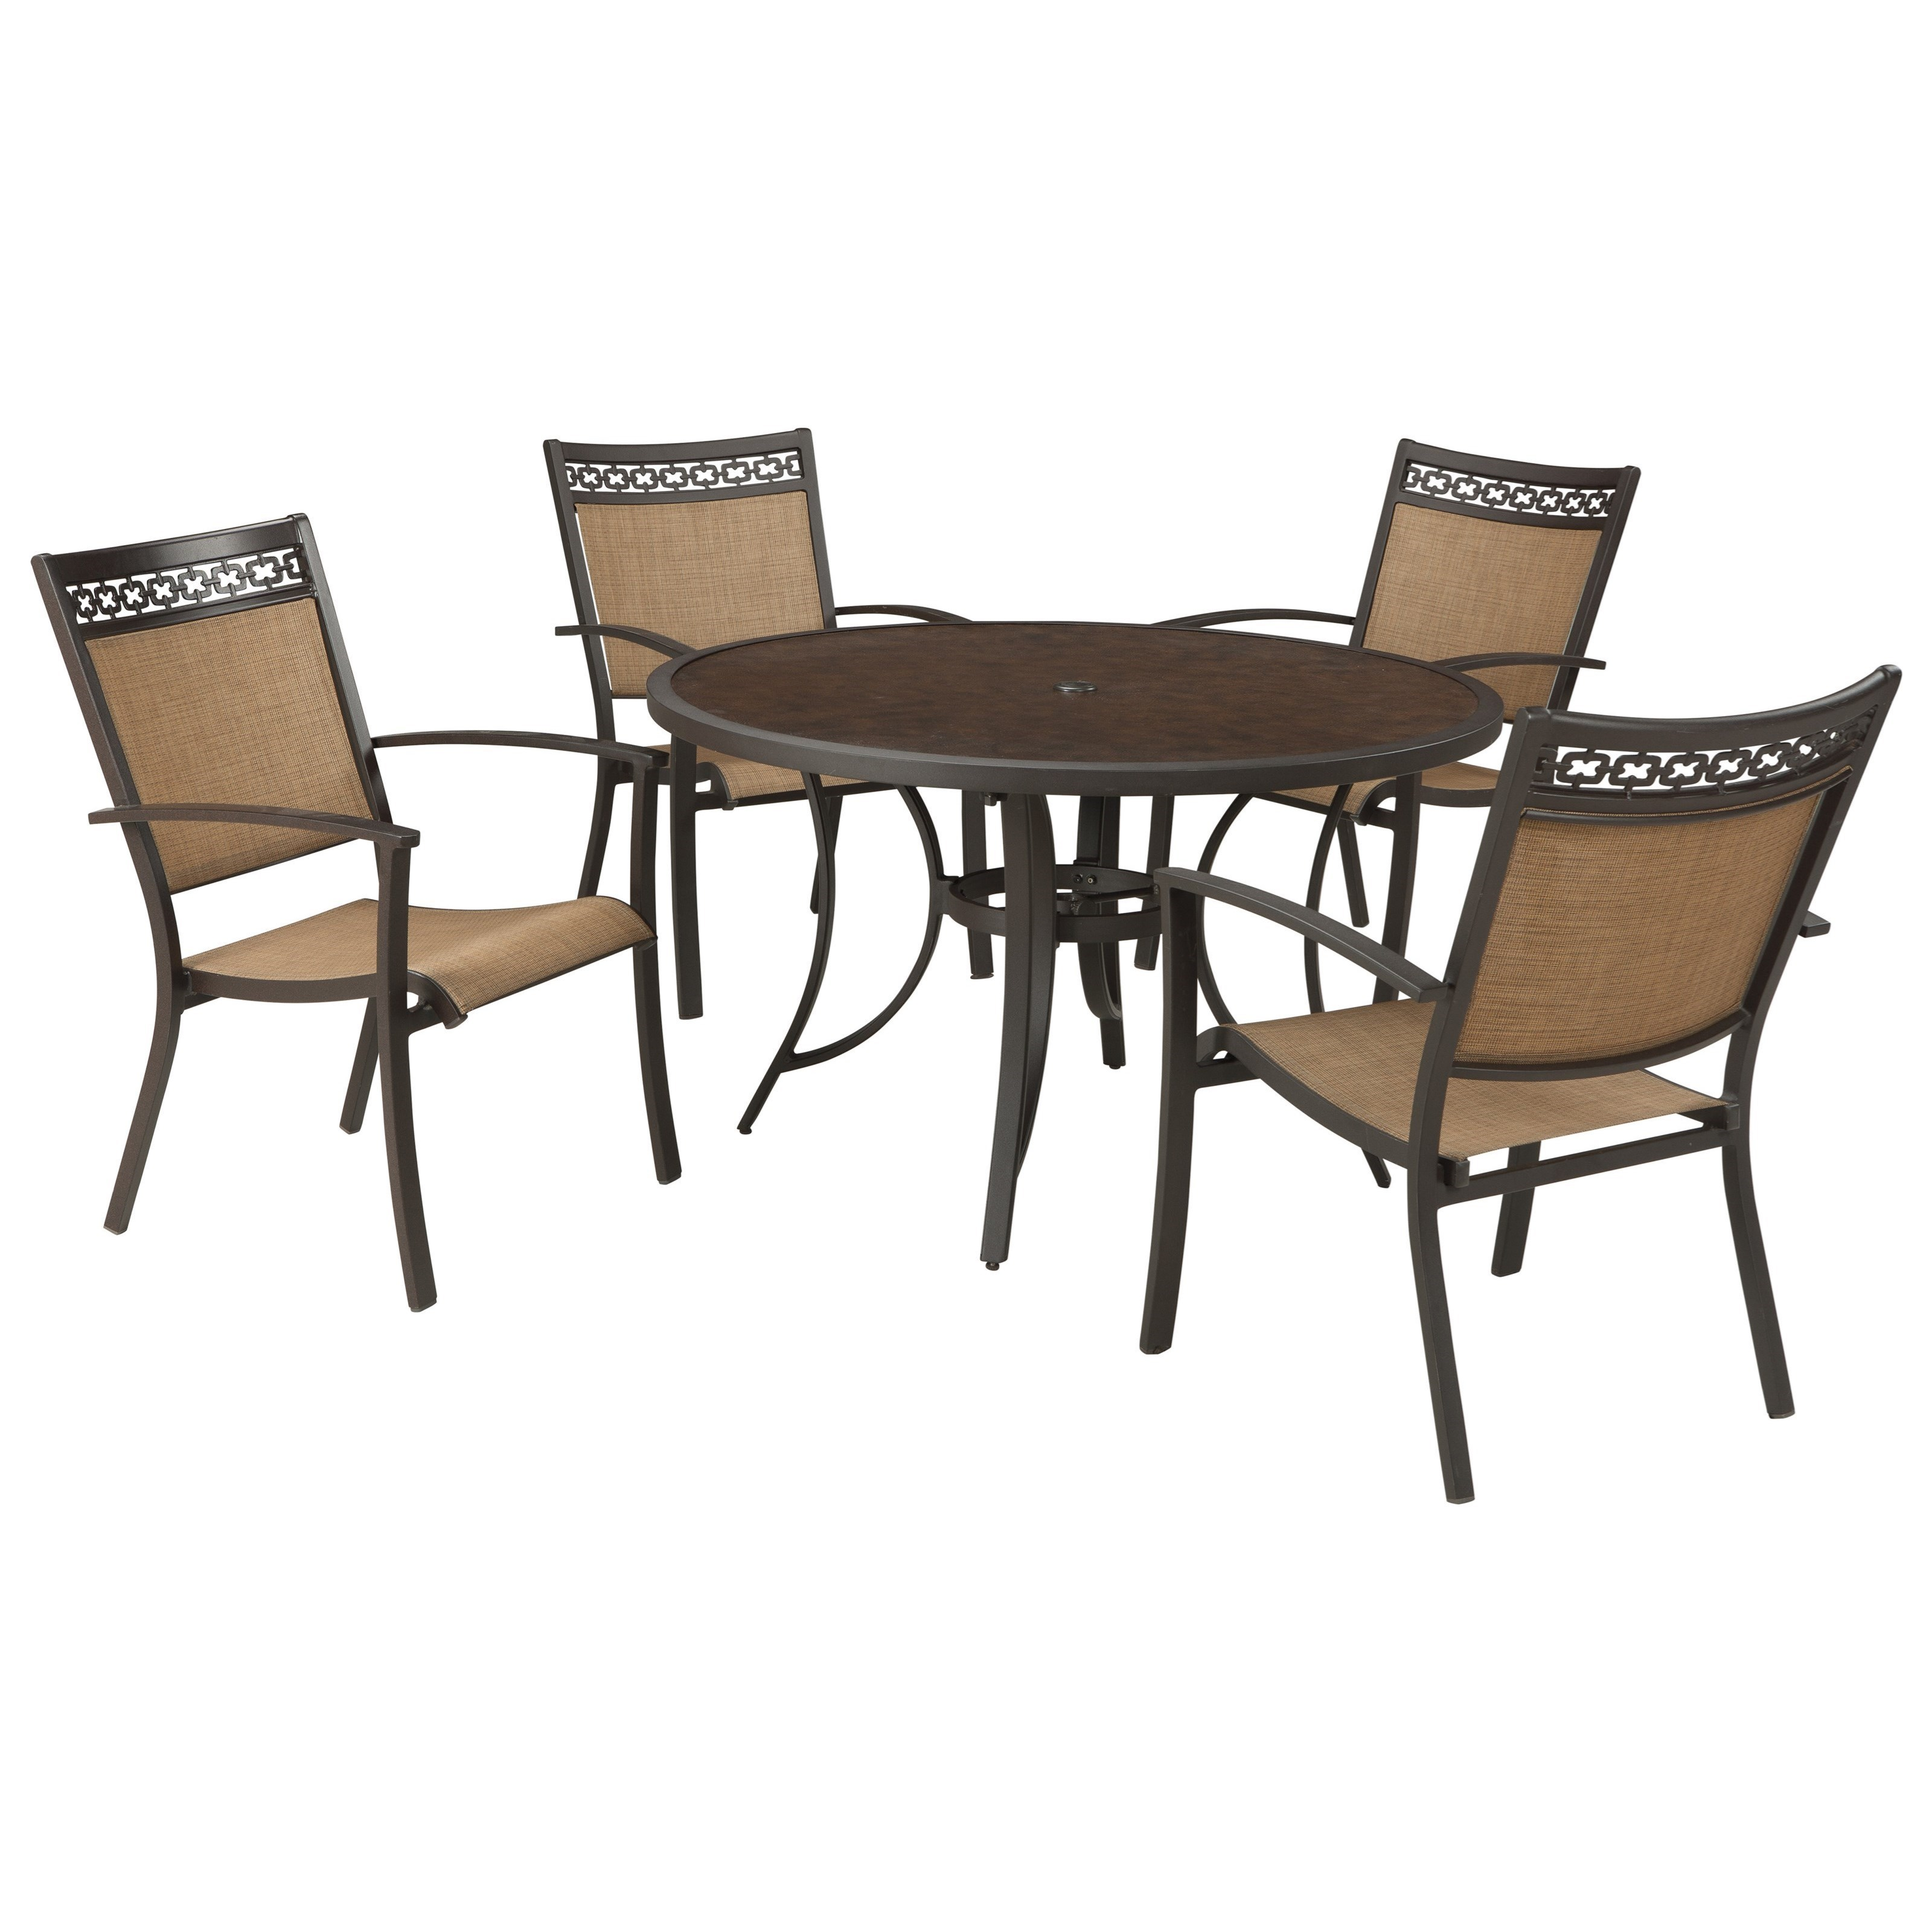 Signature Design By Ashley Carmadelia Outdoor Round Dining Table Set   John  V Schultz Furniture   Outdoor Dining Sets